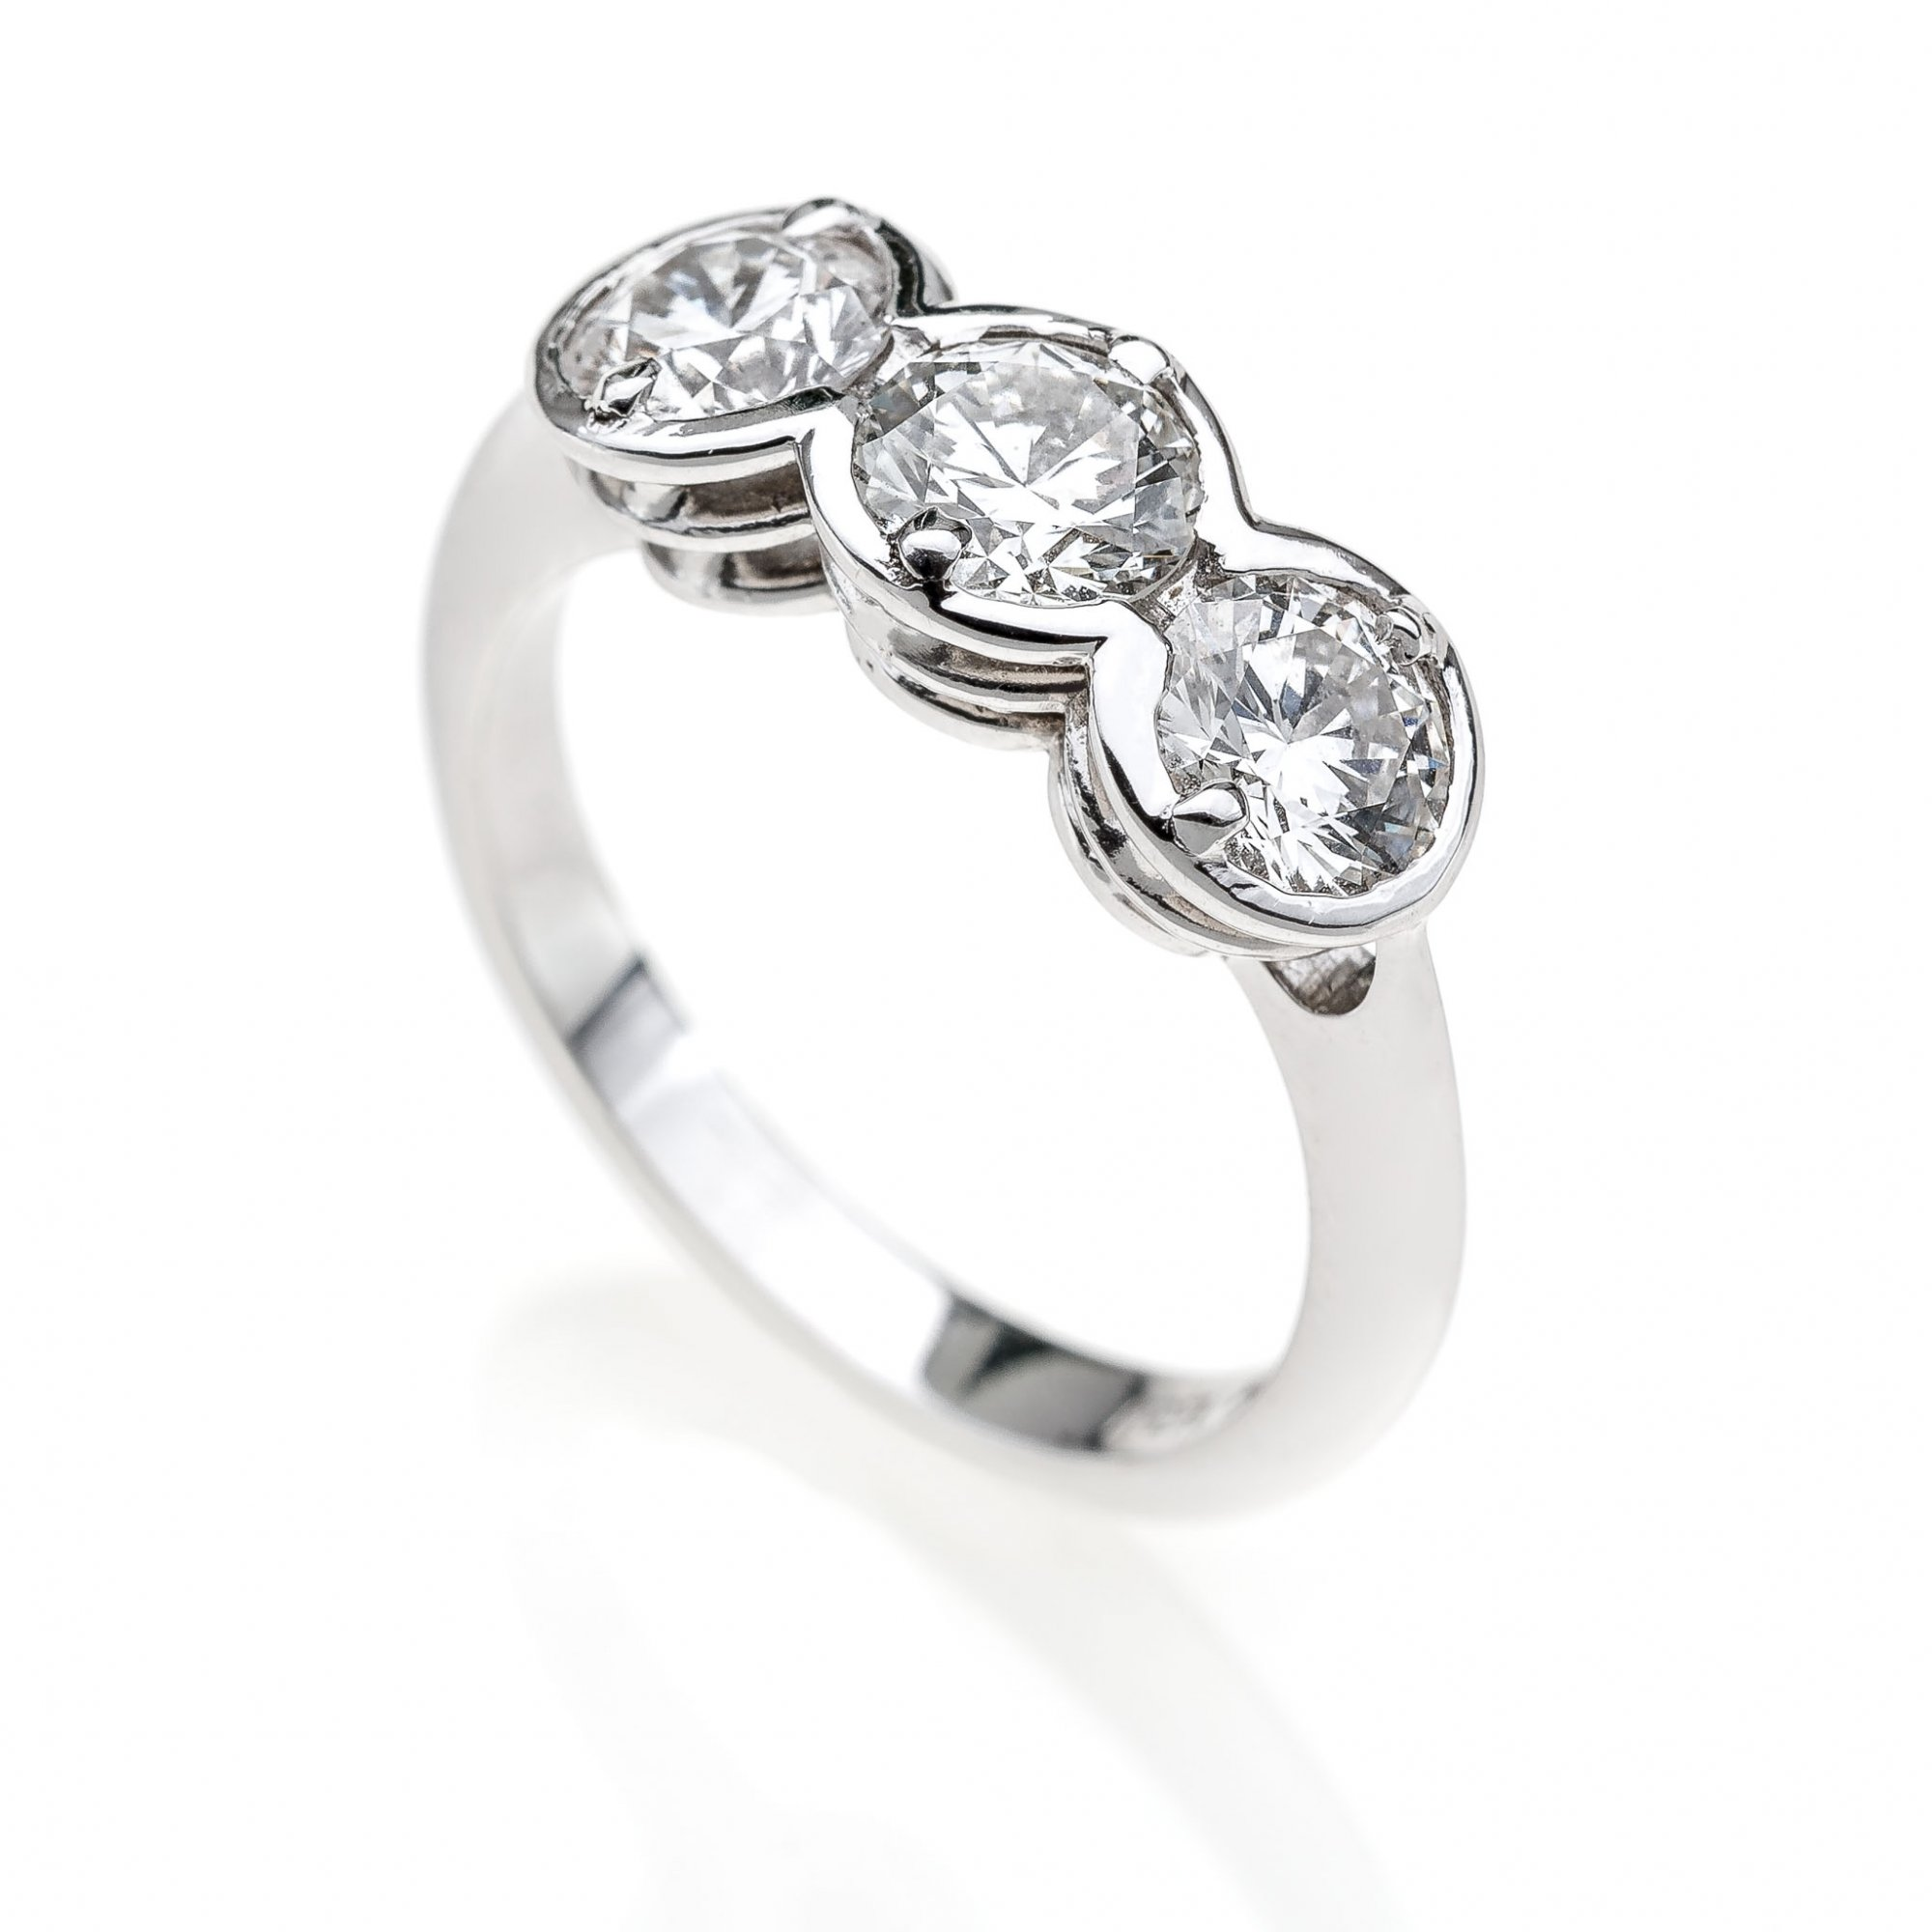 18 KT white gold trilogy ring with round brilliant cut diamonds ct.1.80 VS H color